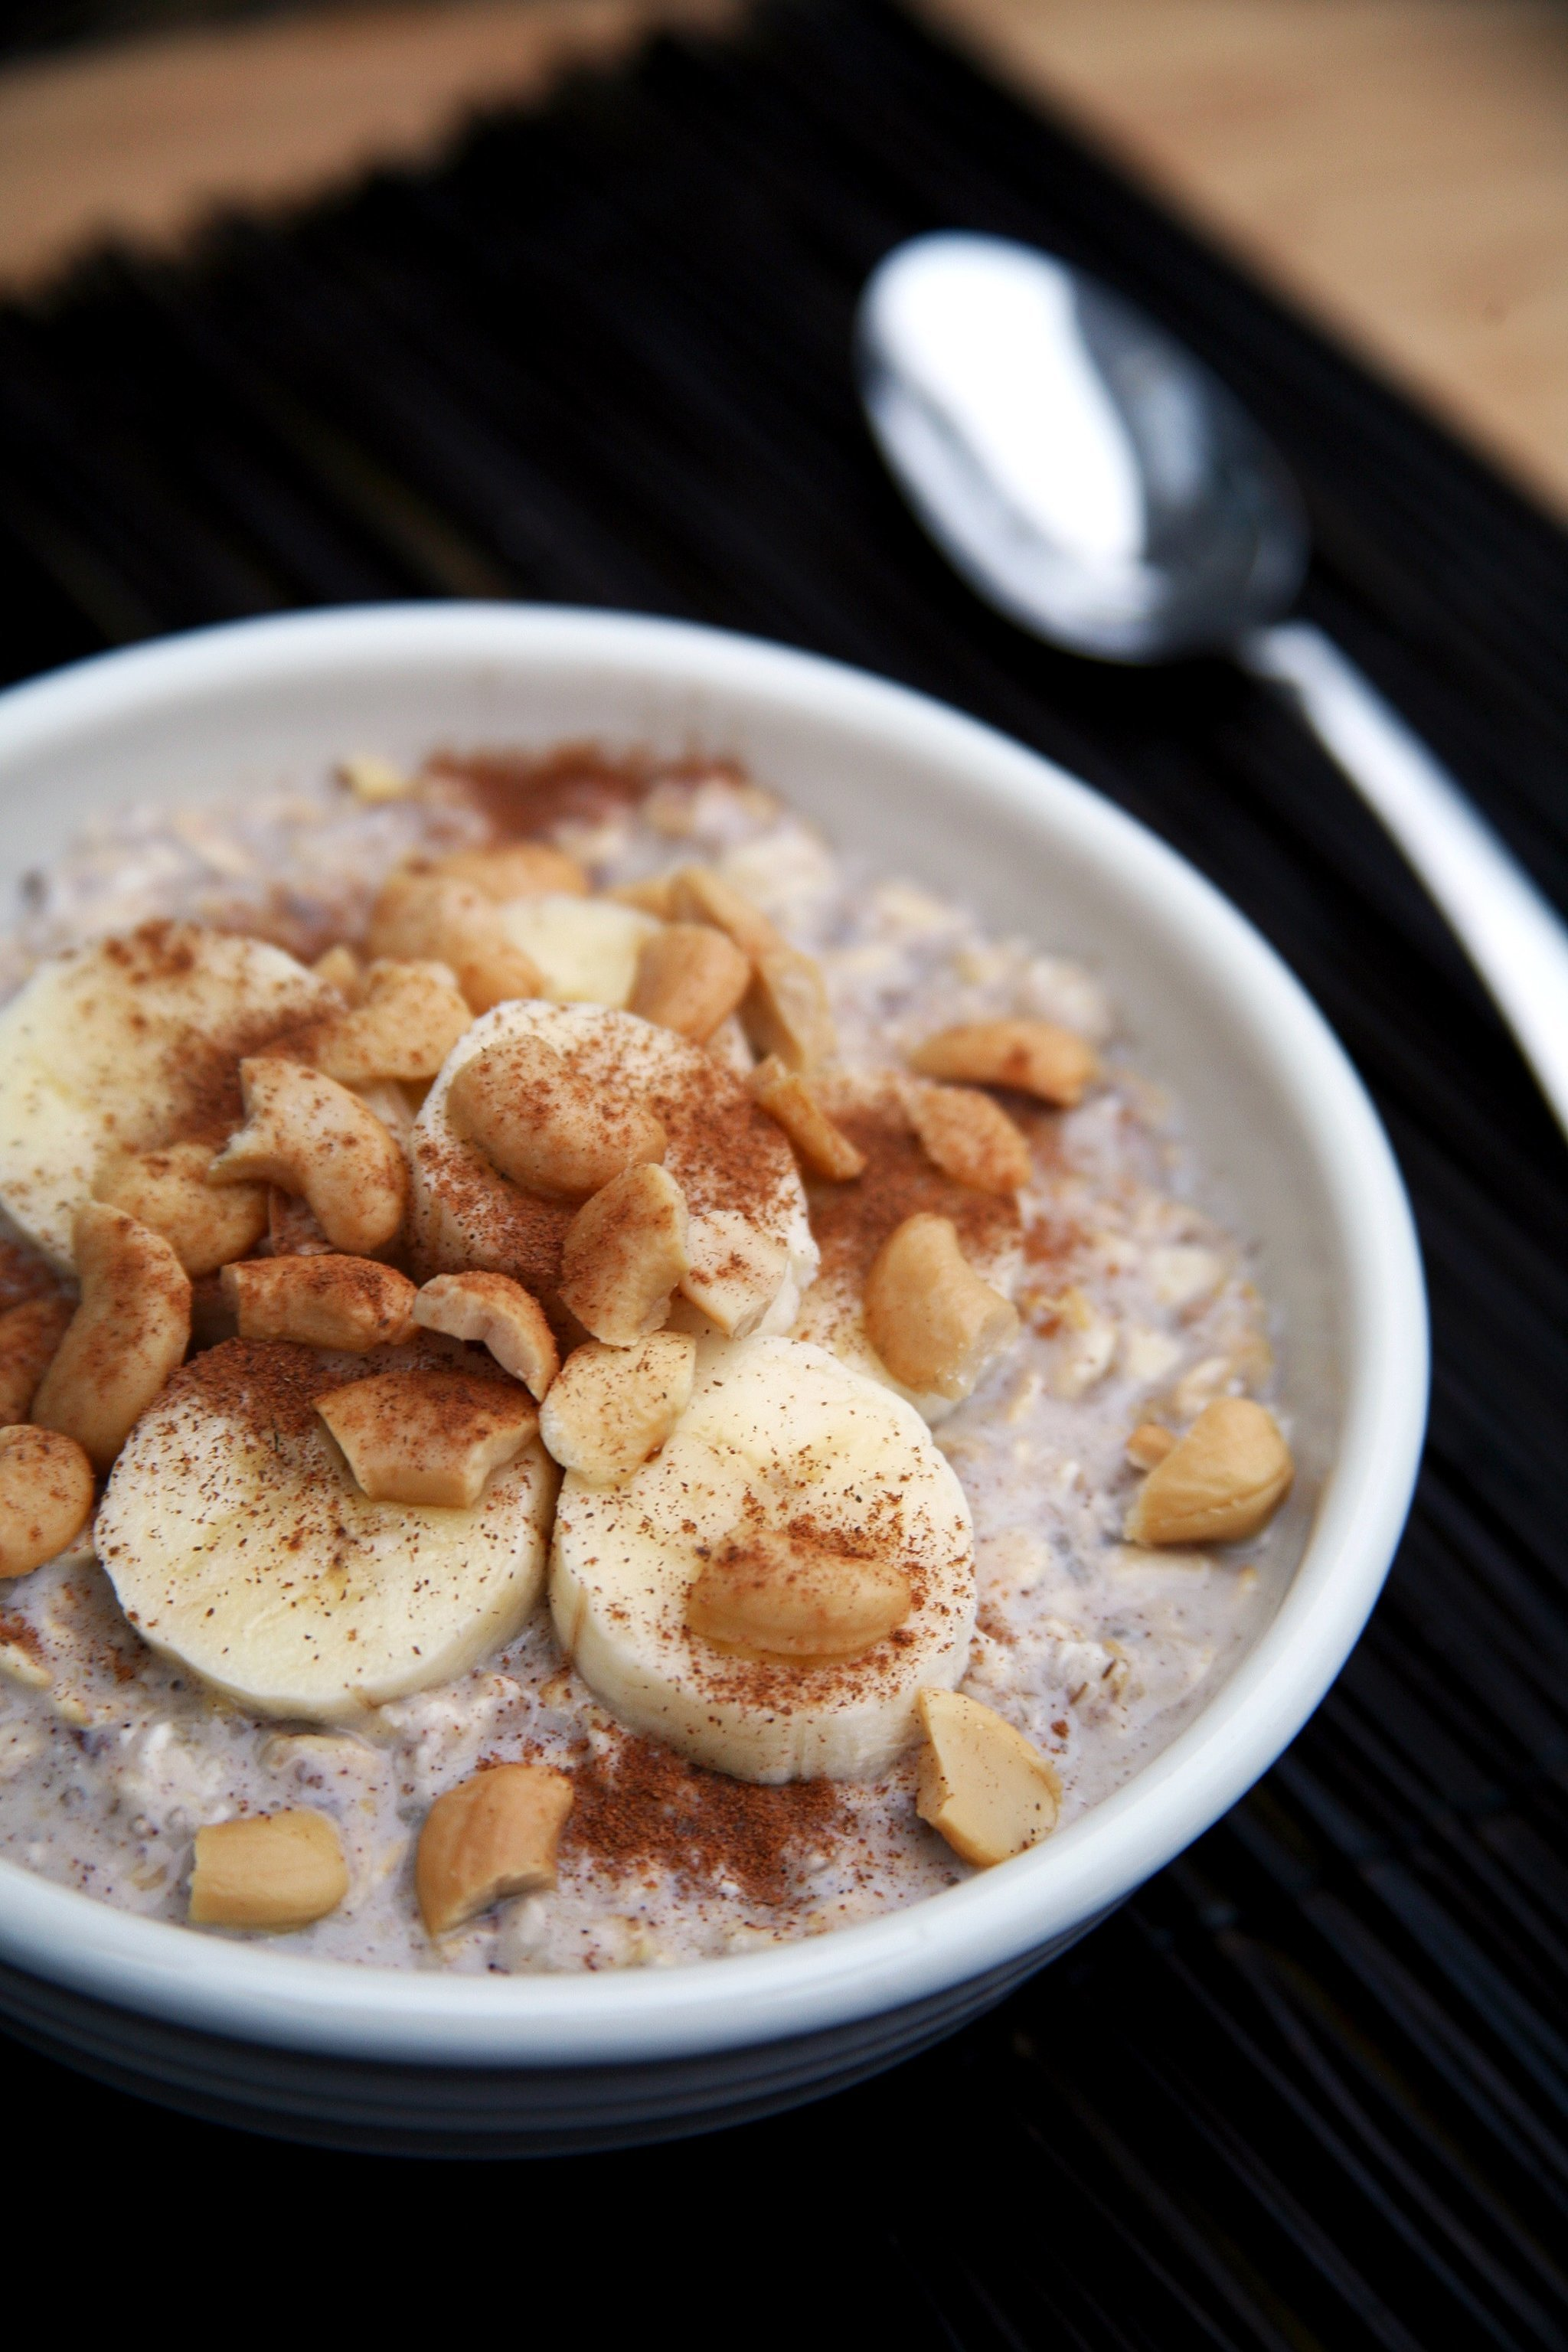 If You're Looking to Lose Weight, Add These to Your Bowl of Oatmeal